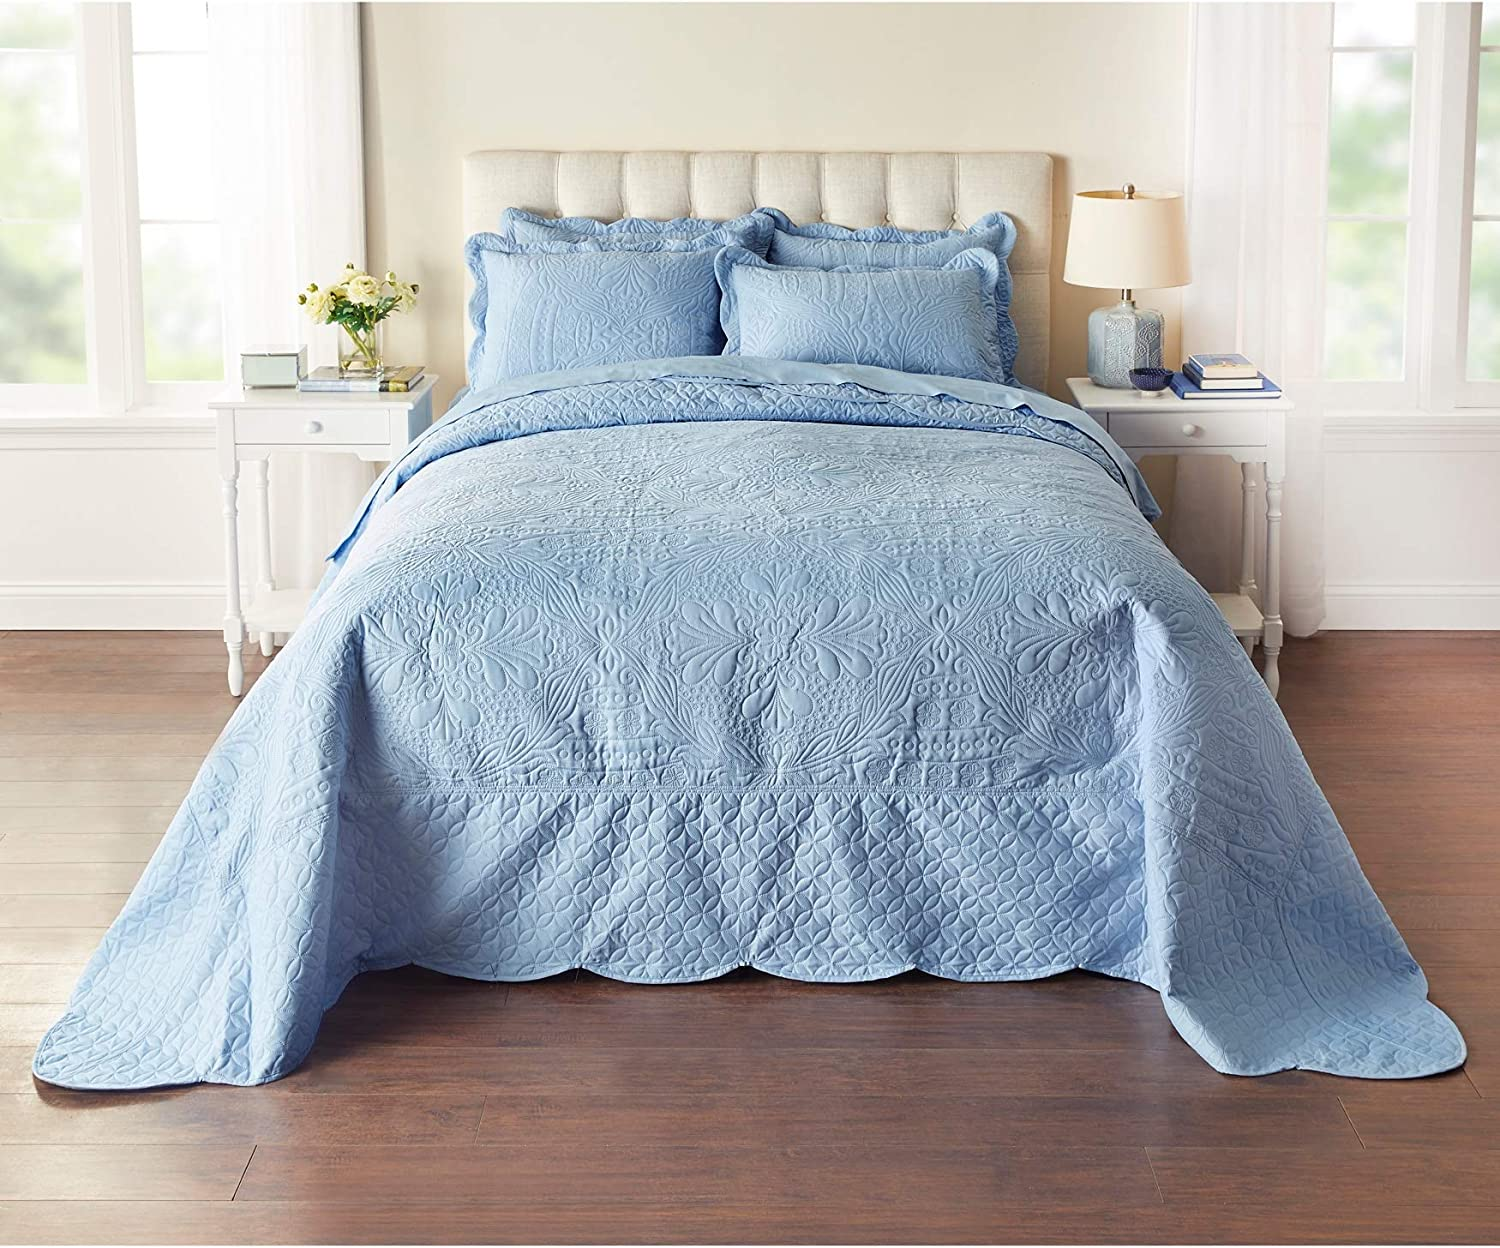 Blue BrylaneHome Lily Damask Embossed Bedspread Twin